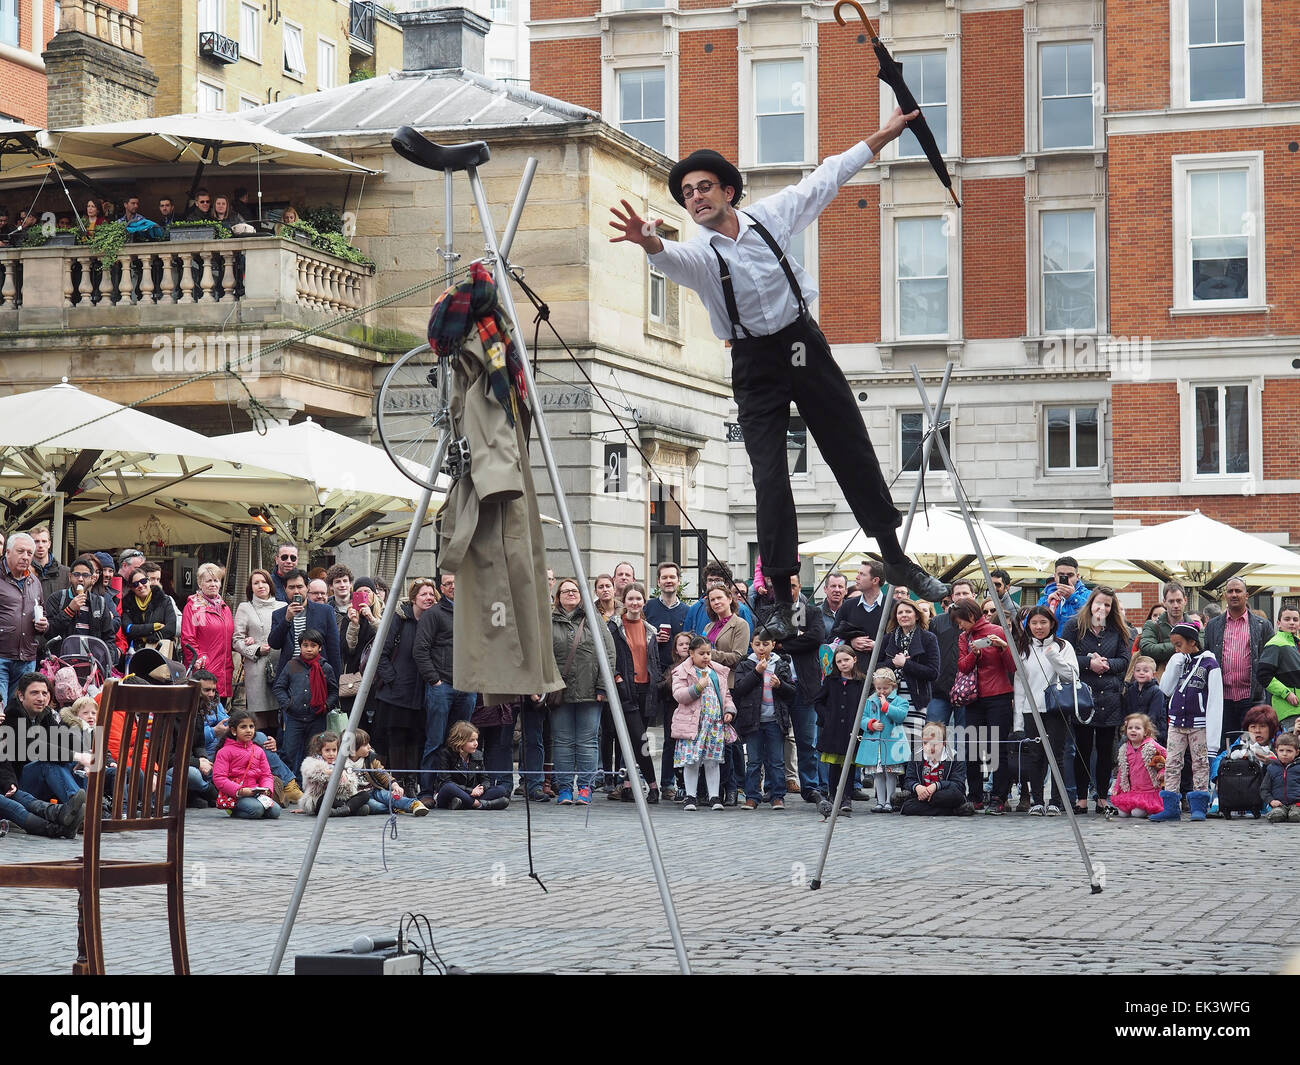 A tightrope walker entertaining a crowd in Covent Garden London UK - Stock Image